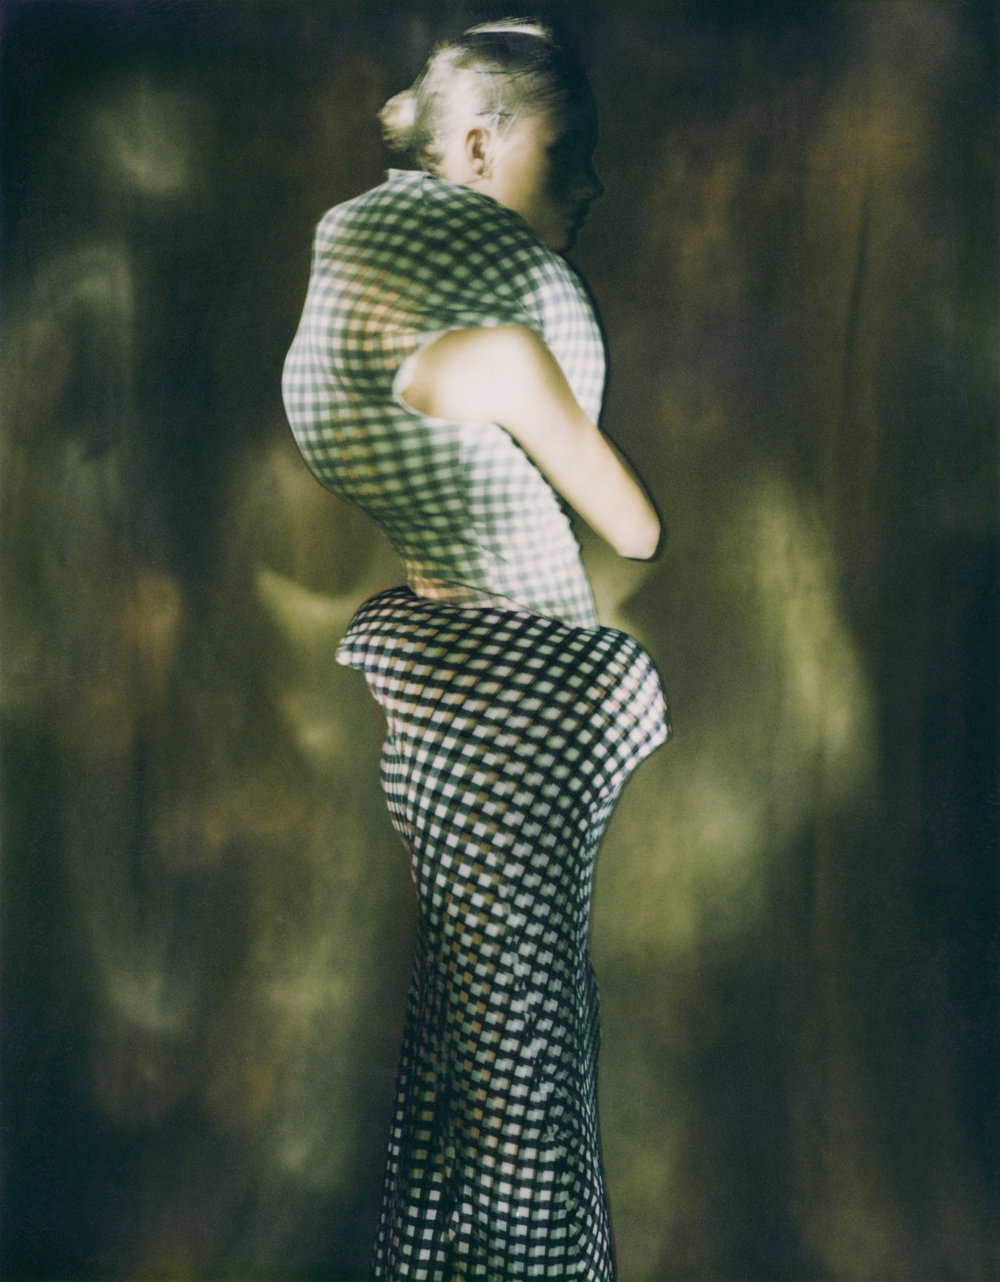 Rei Kawakubo (Japanese, born 1942) for Comme des Garçons  (Japanese, founded 1969). Body Meets Dress - Dress Meets  Body, spring/summer 1997.  Photograph by © Paolo Roversi; Courtesy of The Metropolitan  Museum of Art